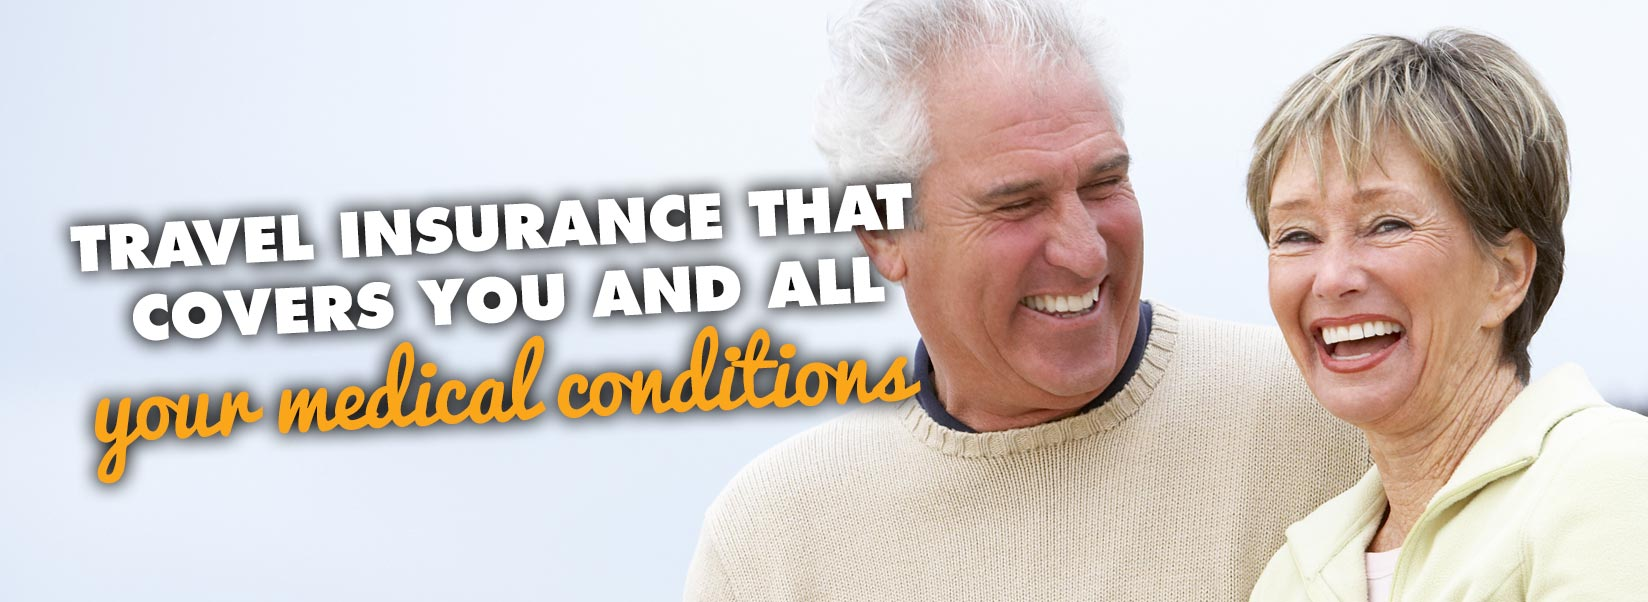 Avanti travel Insurance that covers you and all your medical conditions